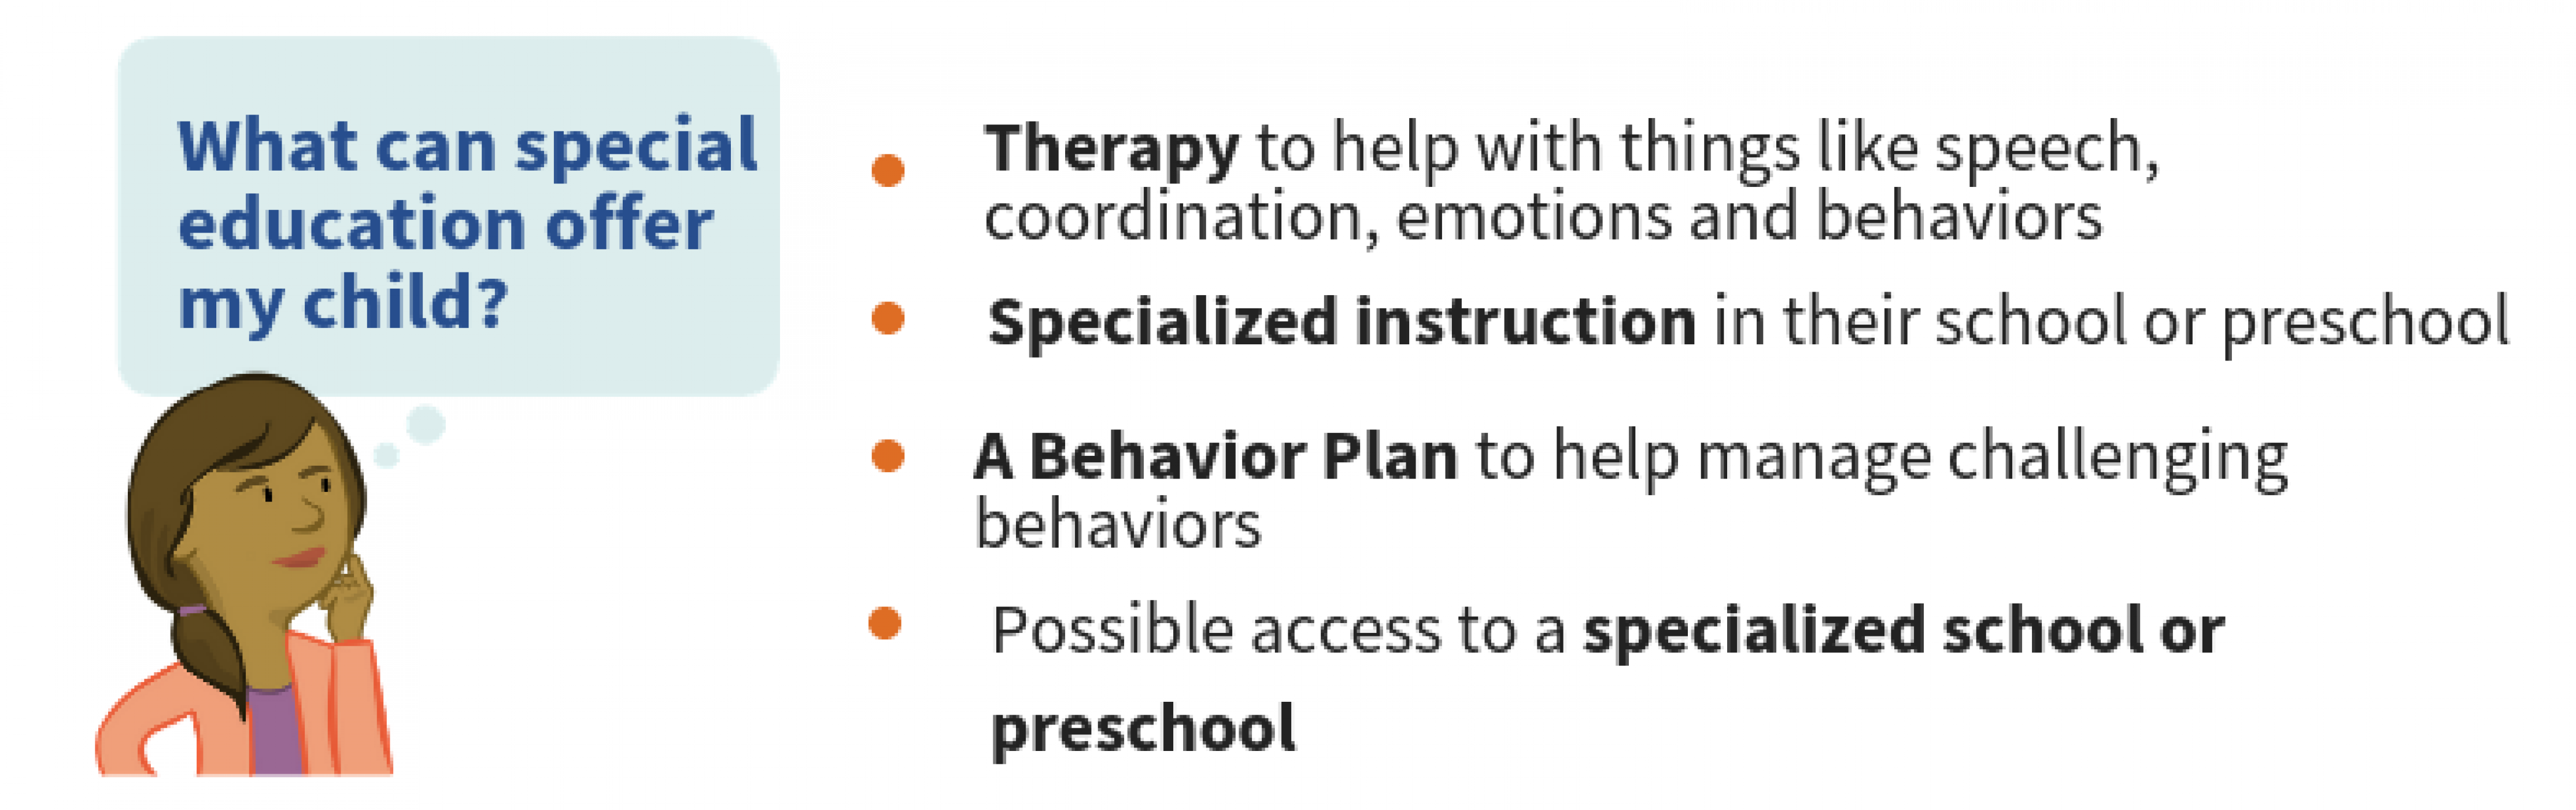 What can special education offer my child? Therapy to help with things like speech, coordination, emotions, and behaviors; specialized instruction in their school or preschool; a behavior plan to help manage challenging behaviors; possible access to a specialized school or preschool.